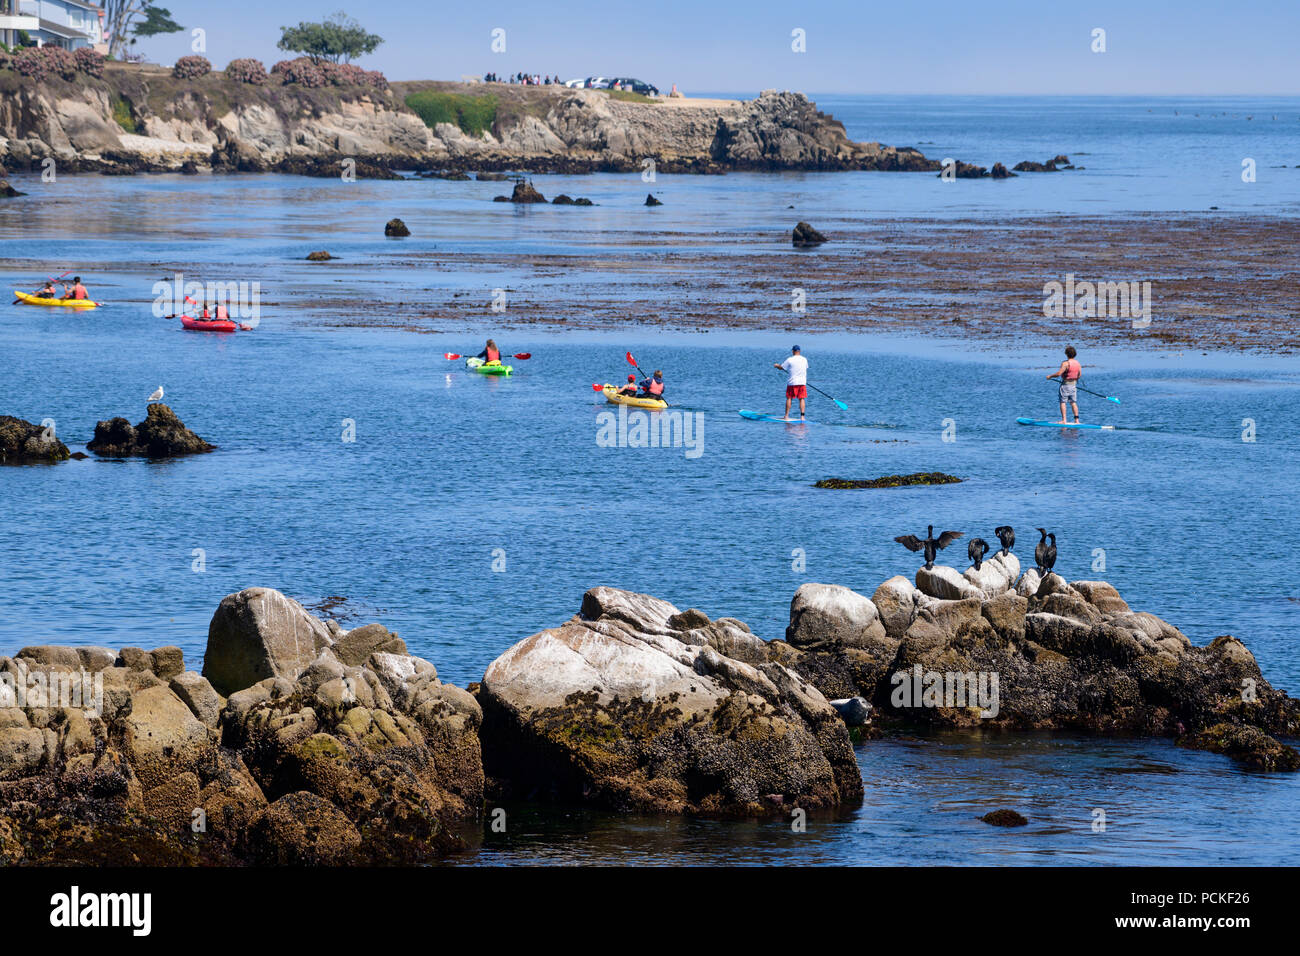 A group of Cormorants watch one of the kayak tours are a popular tourist activity in the Pacific Ocean along the coast of Pacific Grove and Monterey. - Stock Image